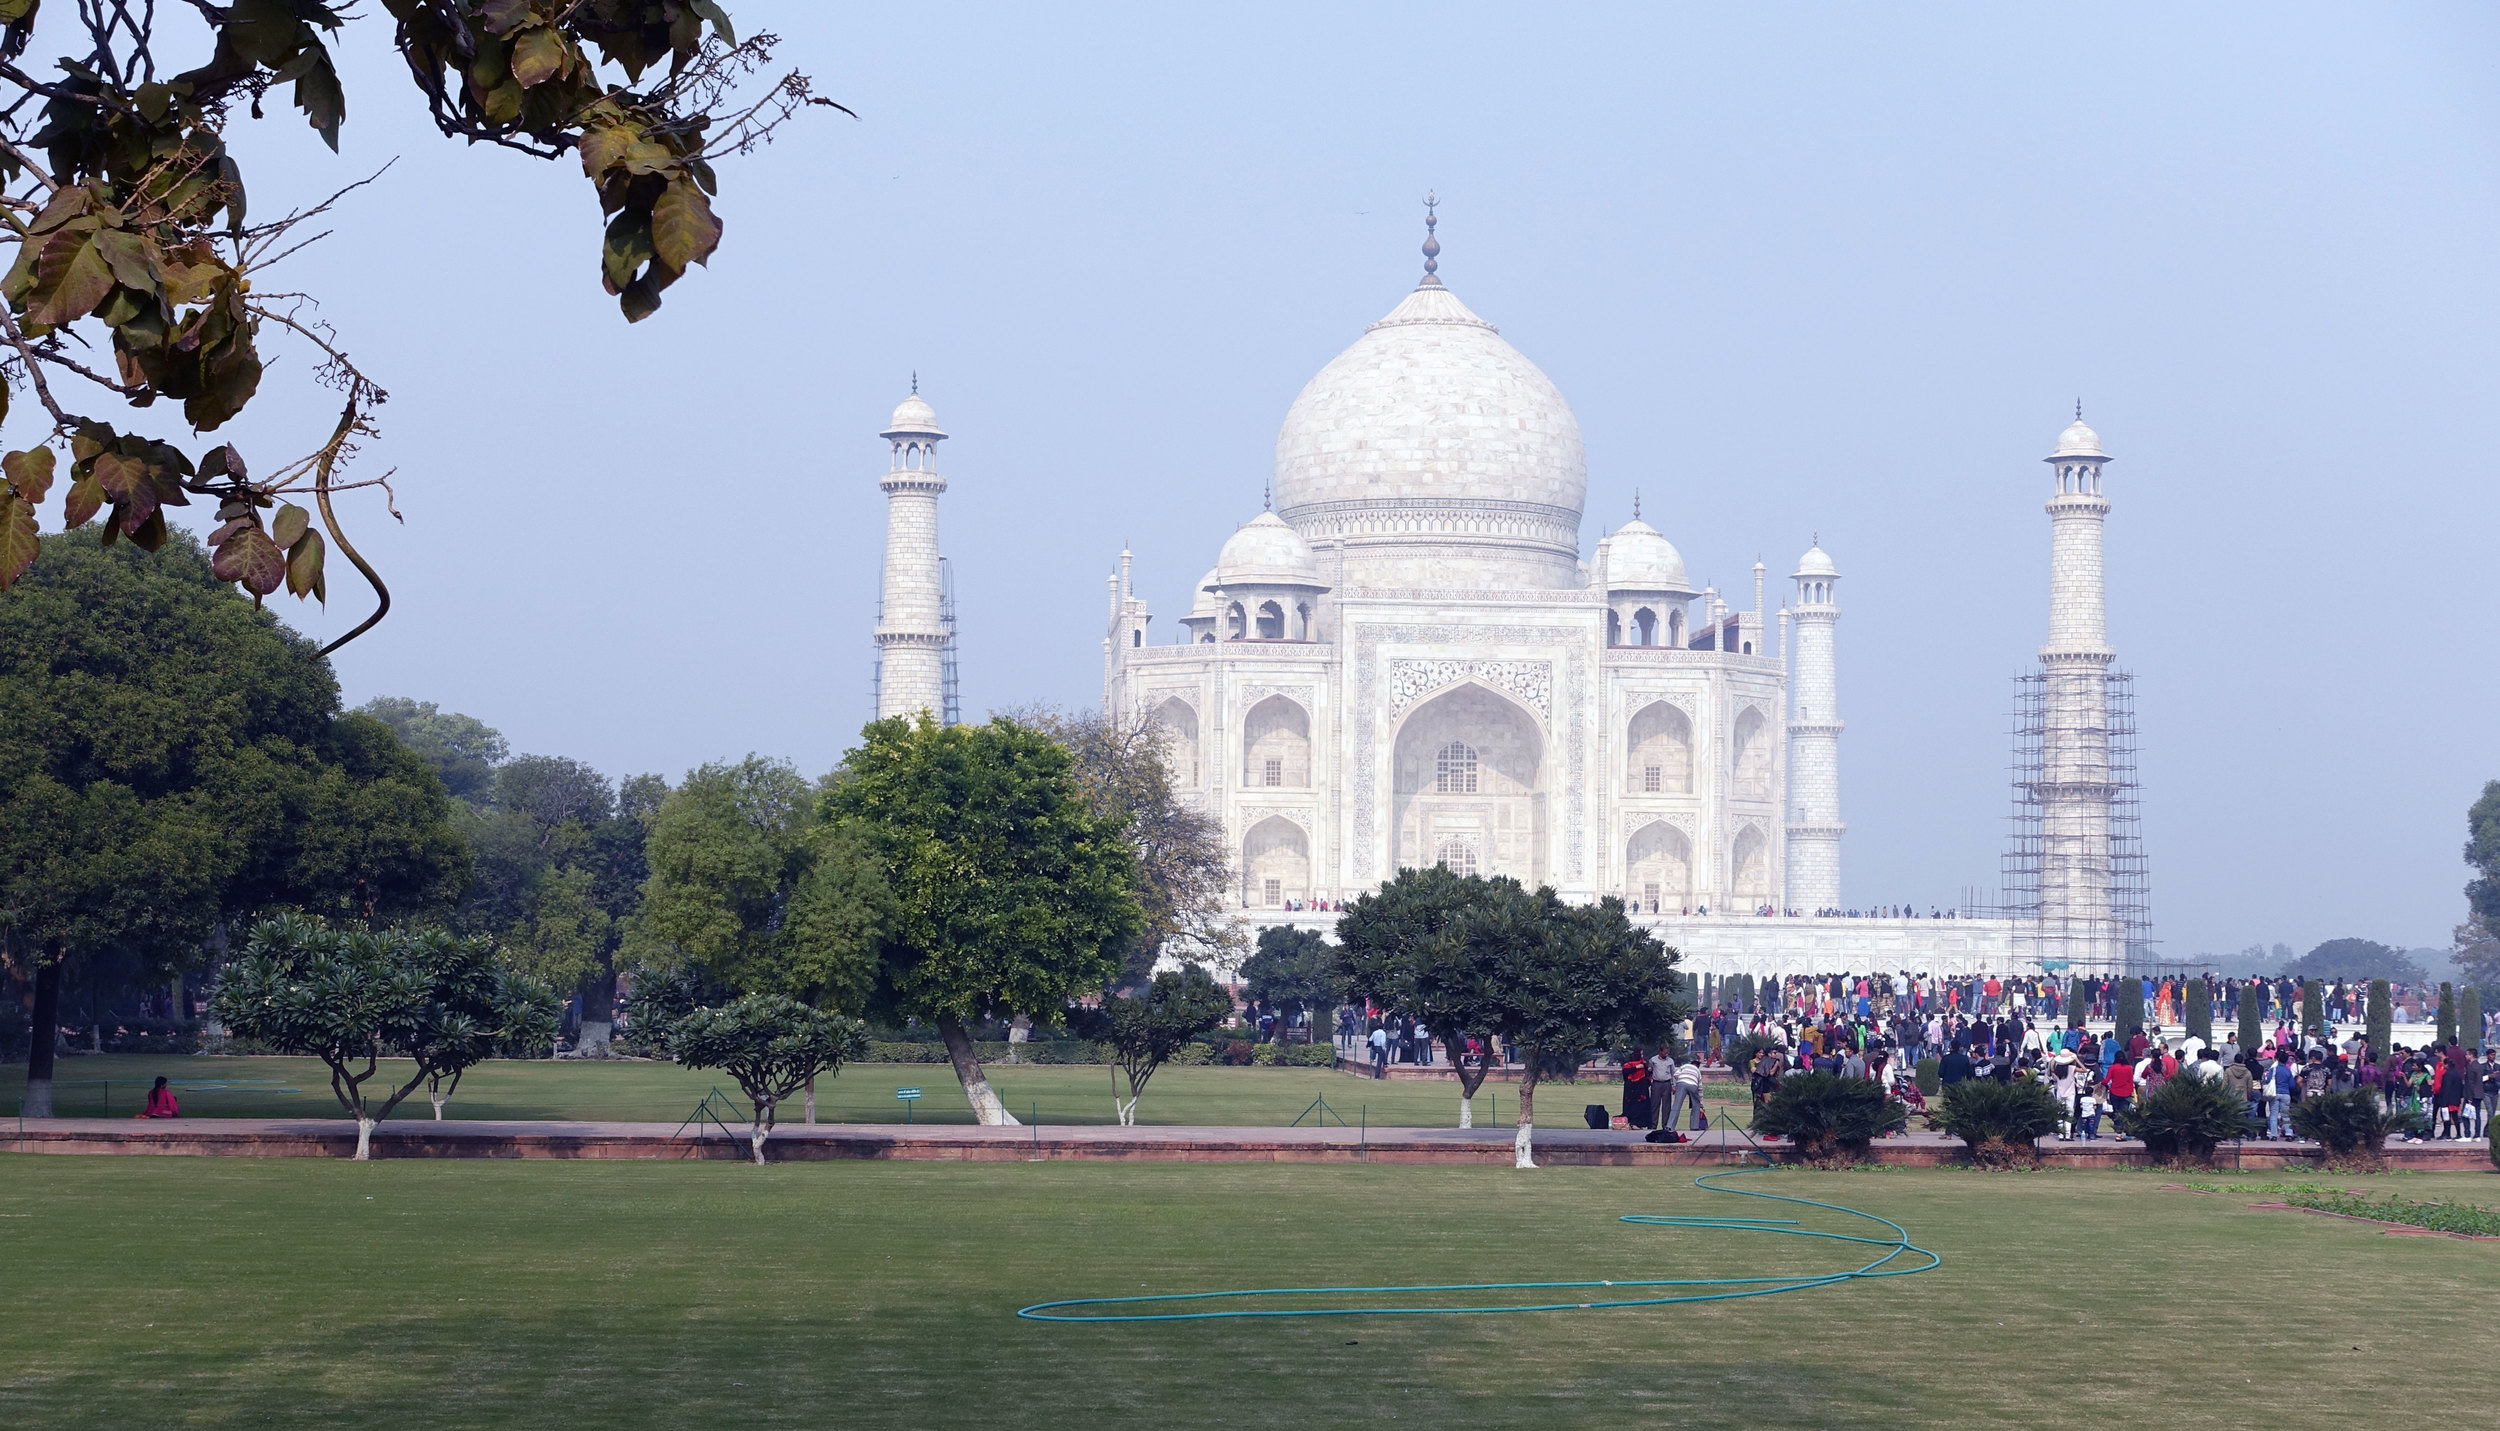 Apparently 15,000 people visit the Taj Mahal a day, more during the high season: November through January